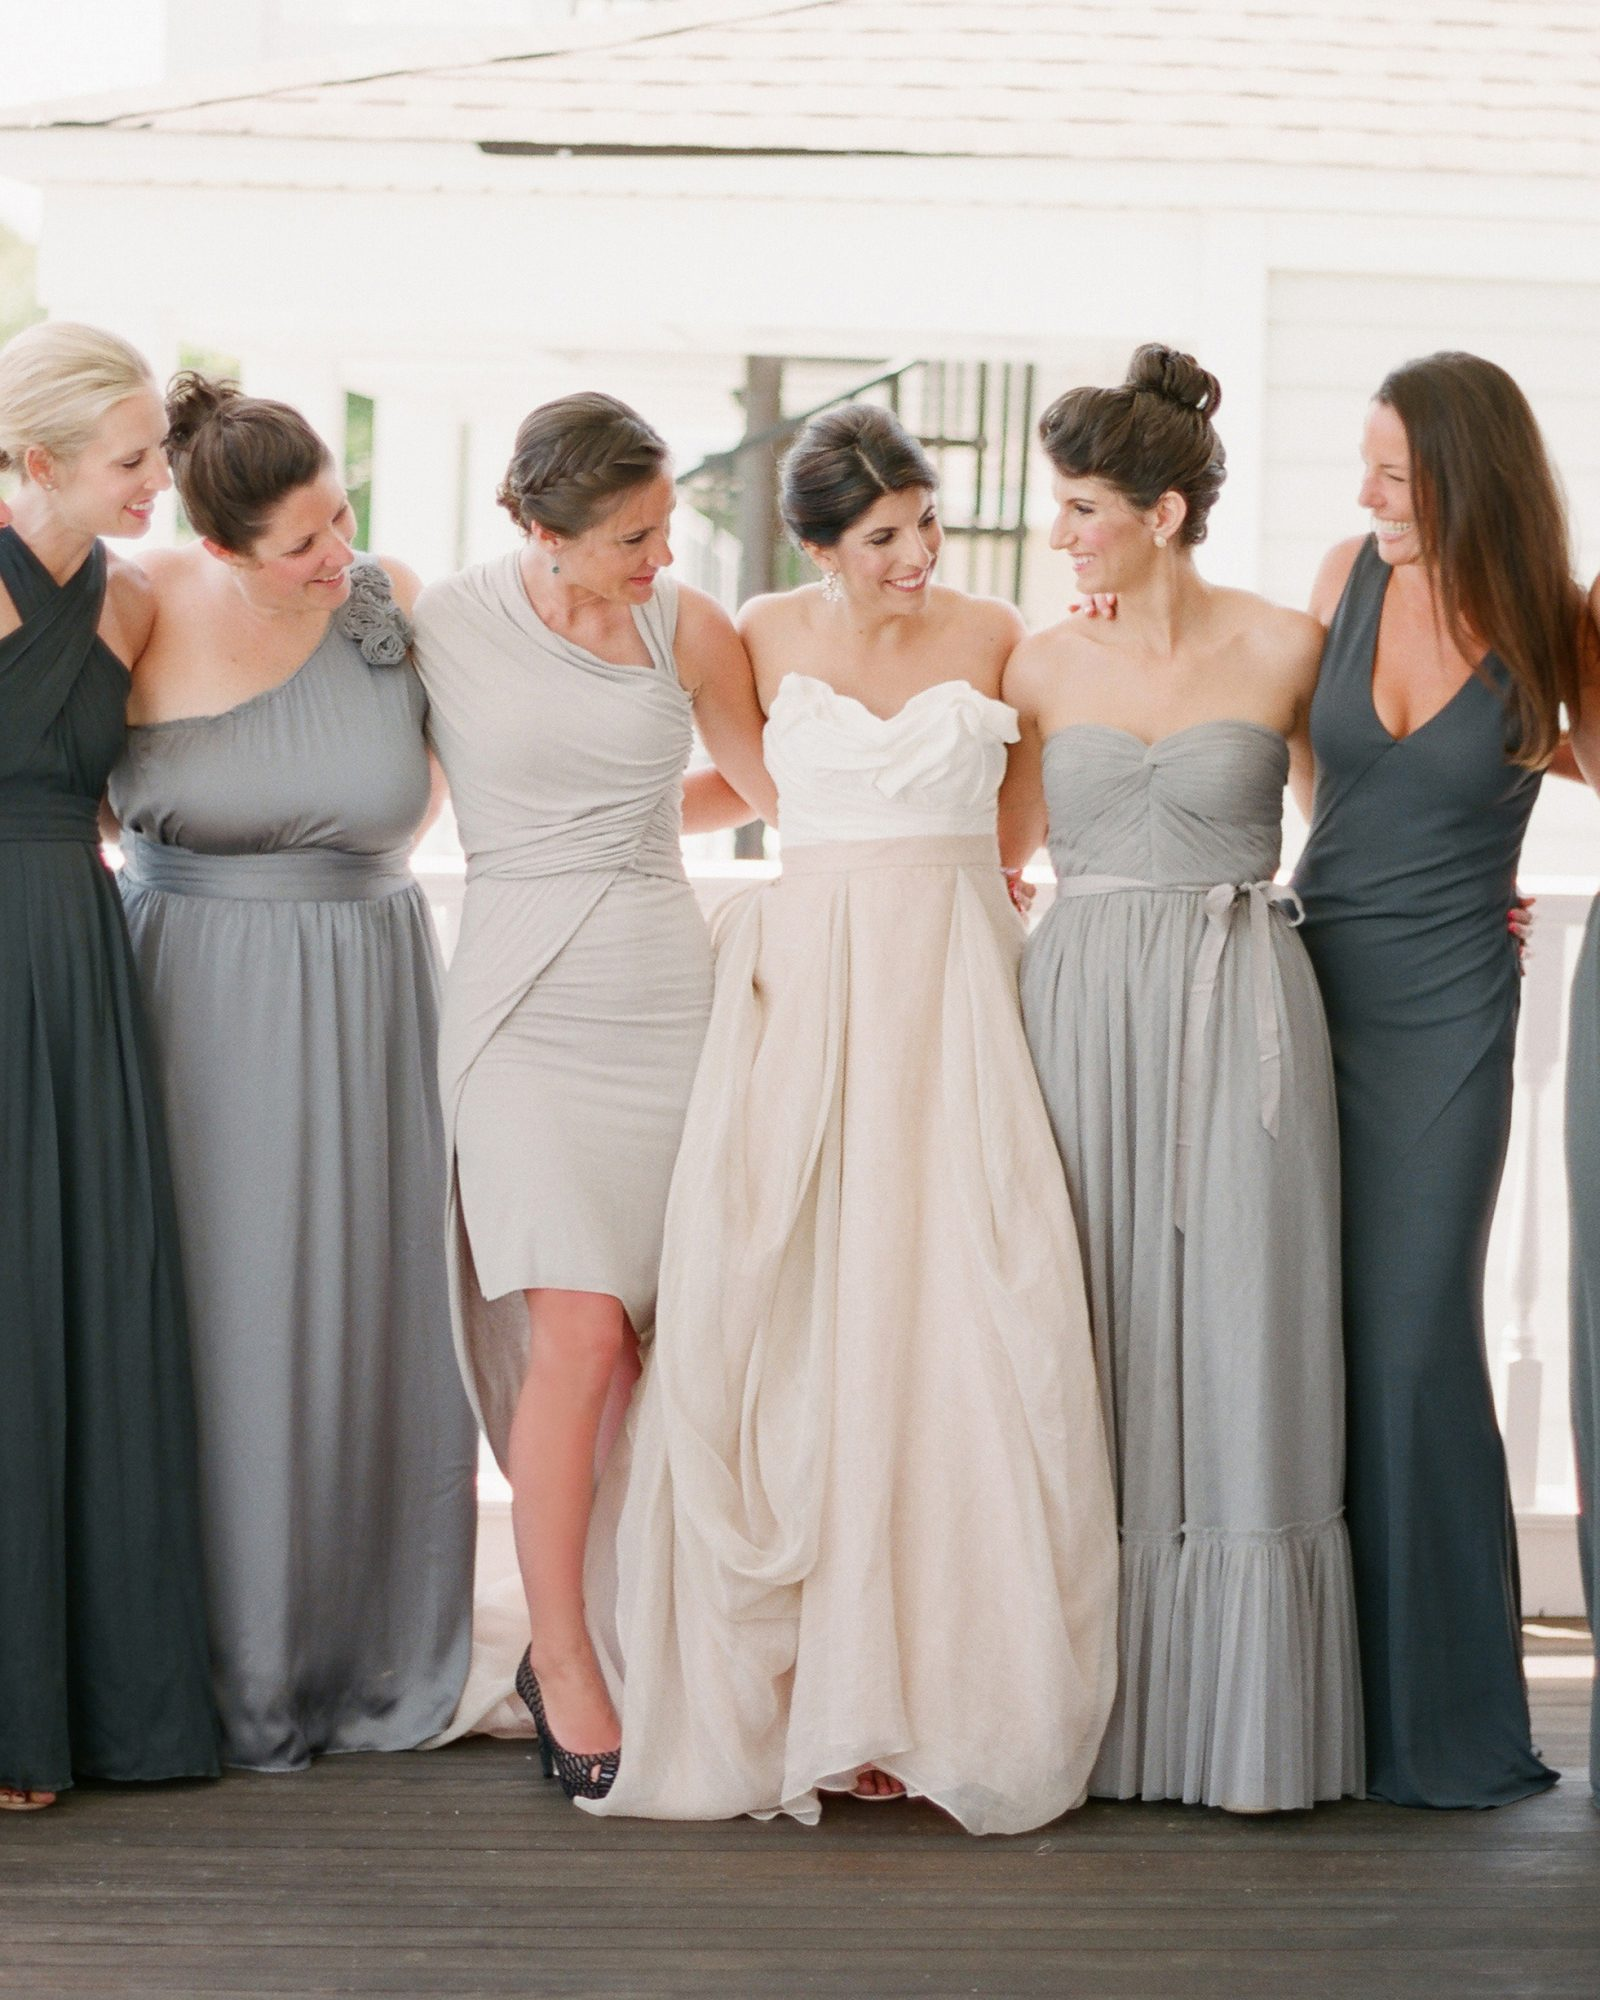 catherine-adrien-wedding-bridesmaids-0255-s111414-0814.jpg